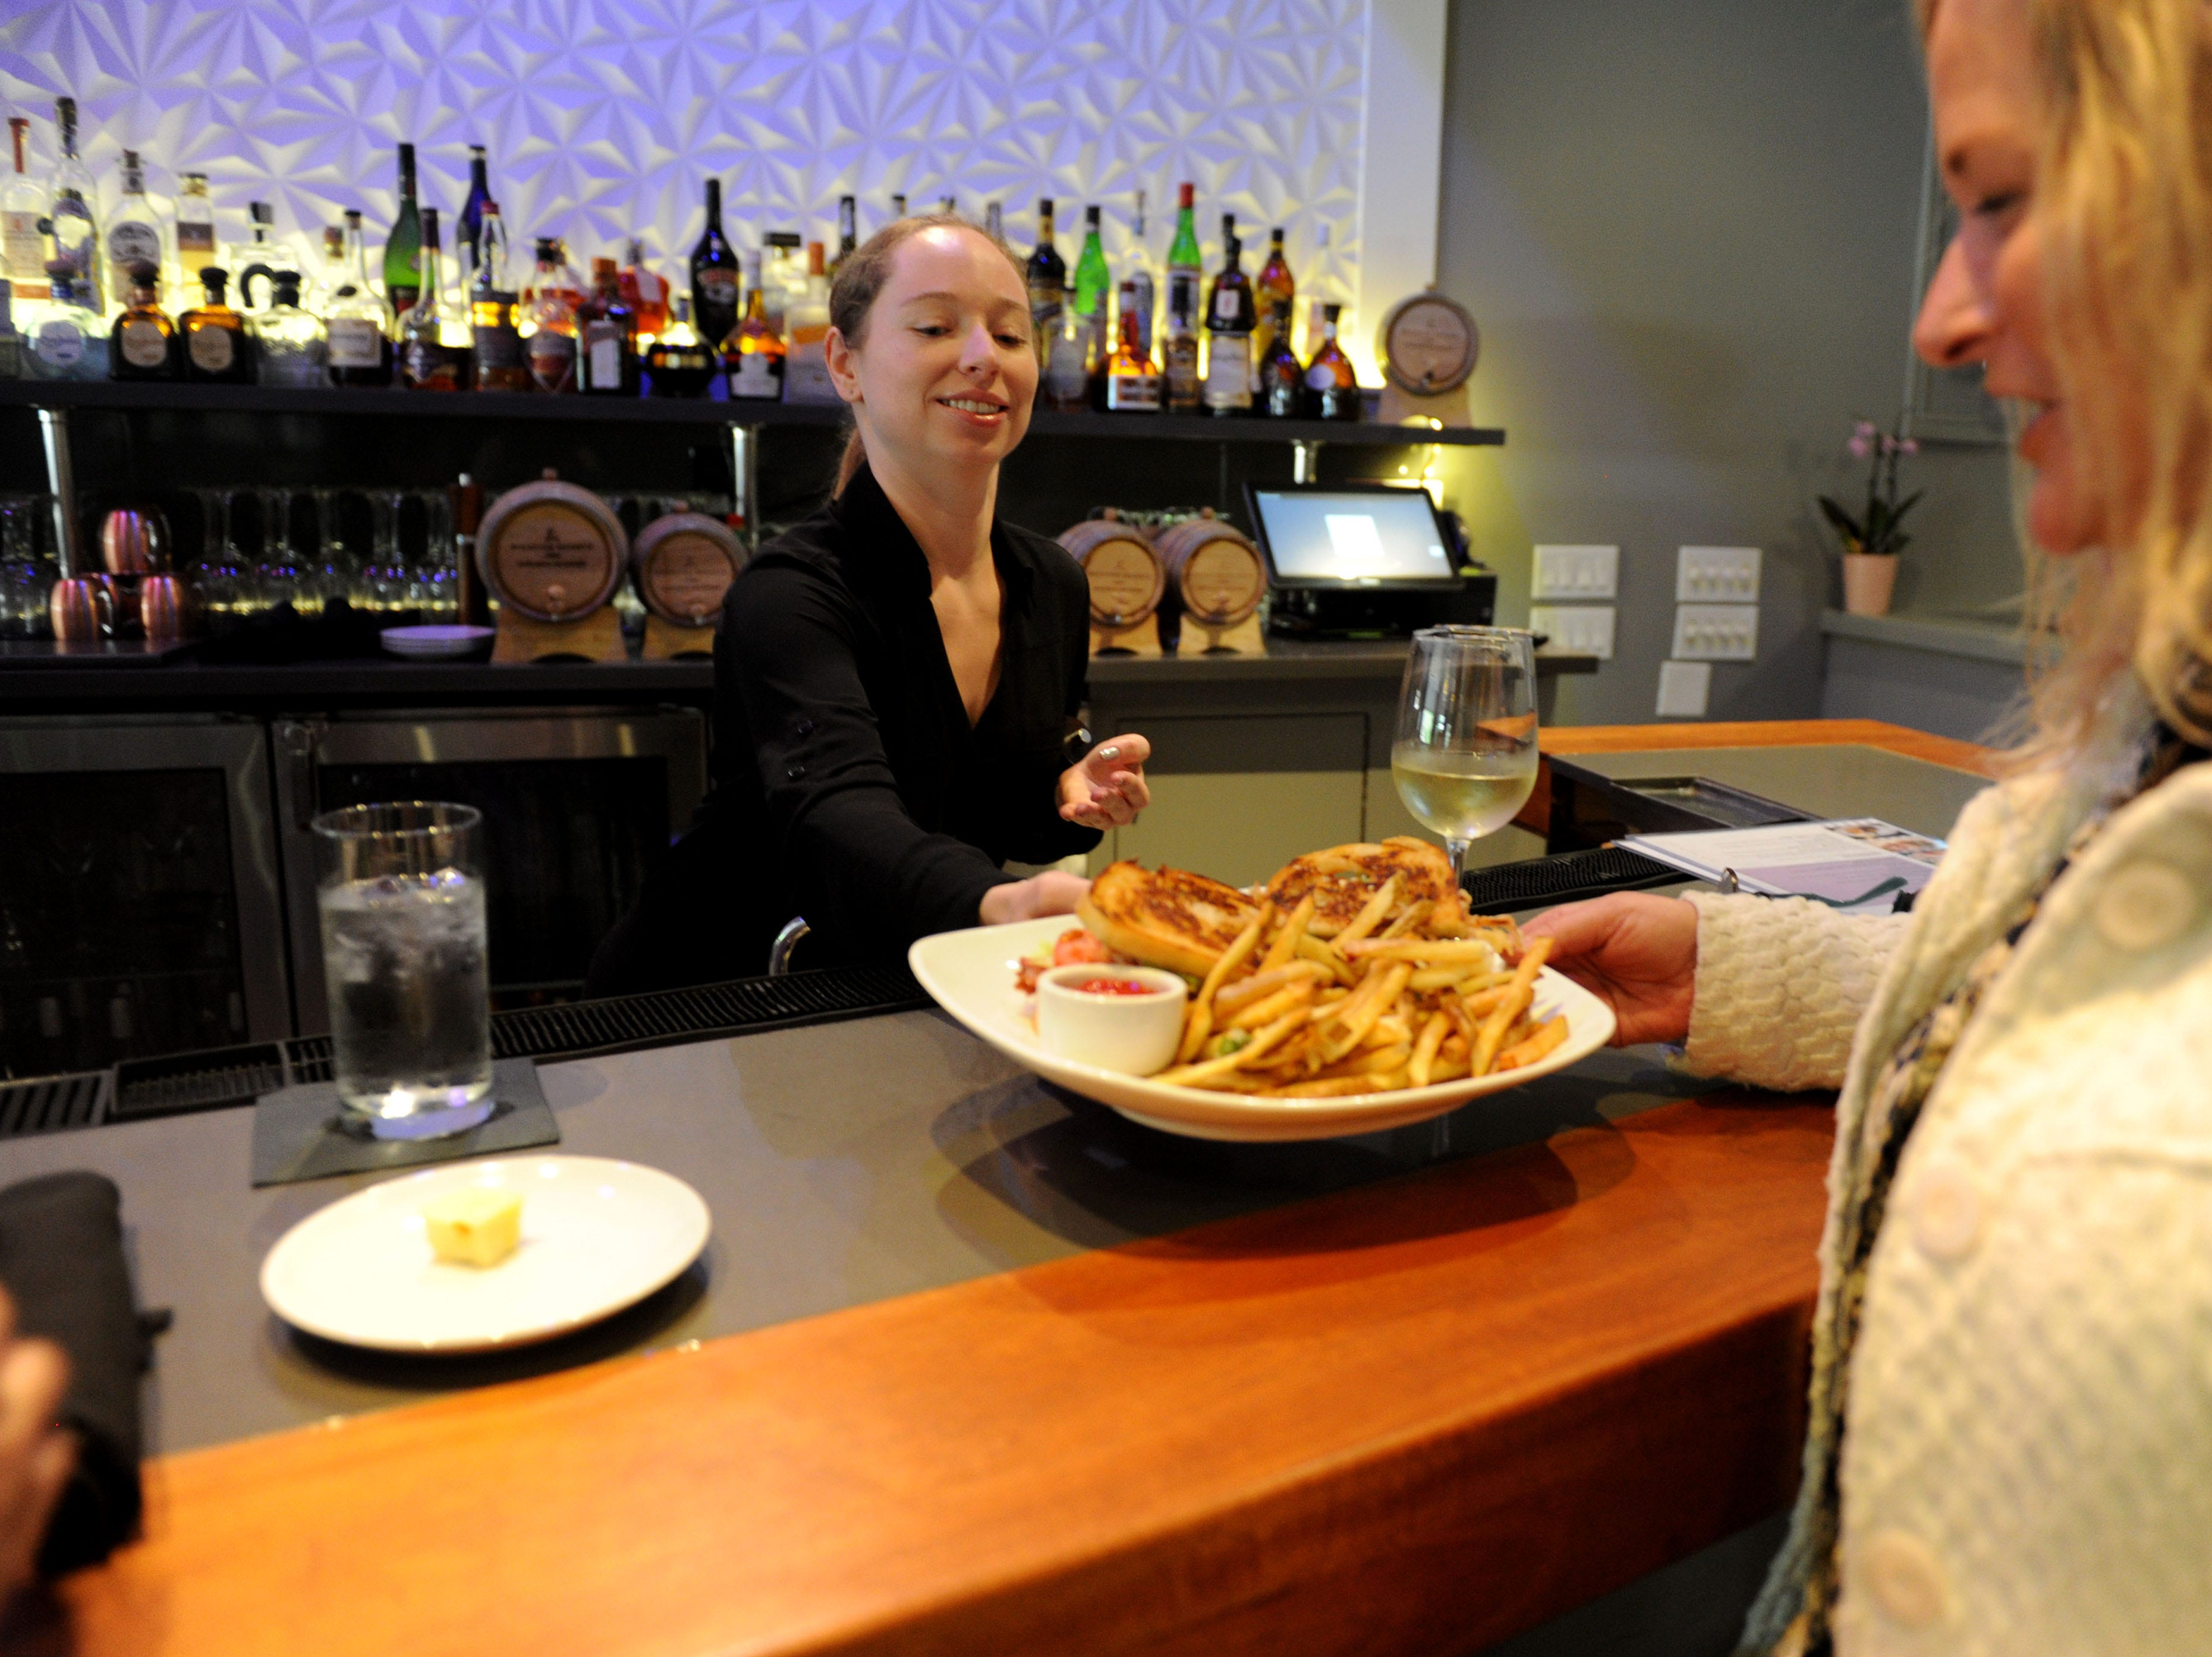 Erika Giroux, hostess at Slate Bistro & Craft Bar, in Camarillo serves Robin Reed the fresh soft shell crab sandwich with French fries.